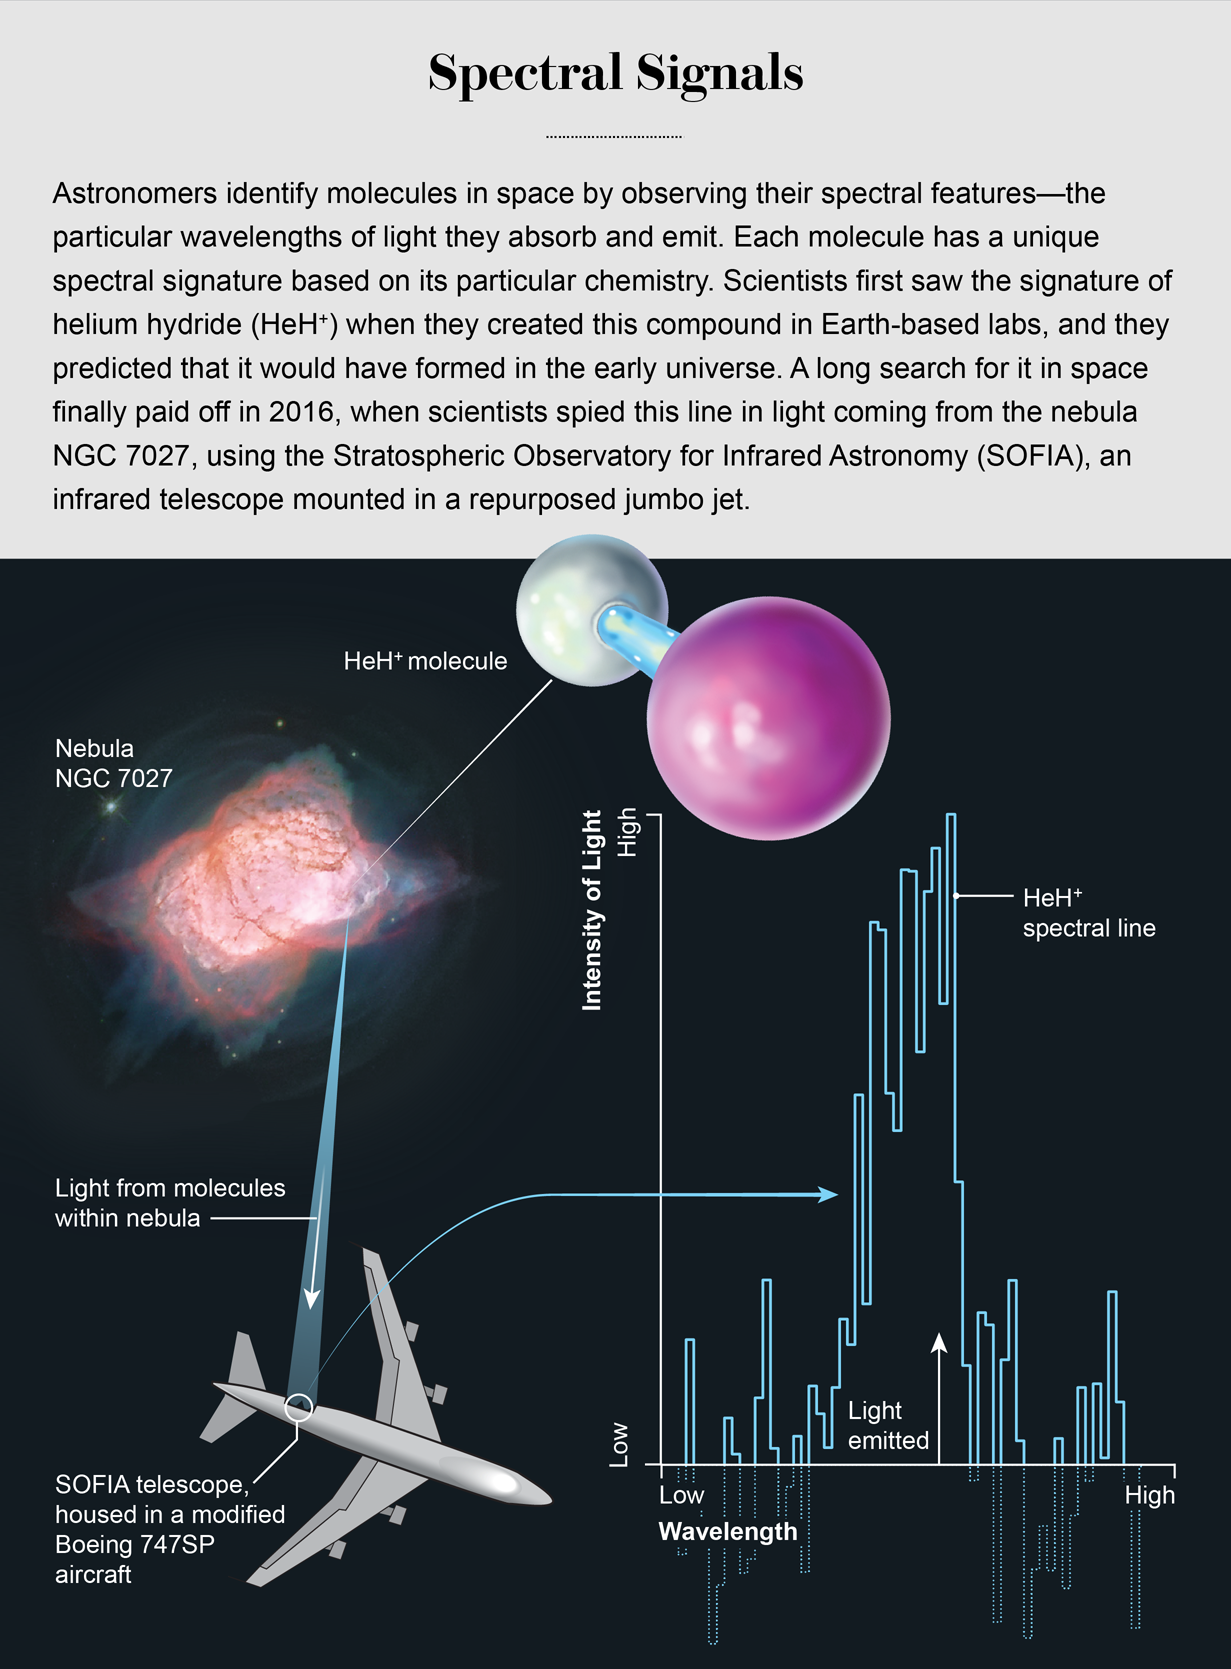 Graphic shows light from helium hydride in Nebula NGC 7027 entering the SOFIA telescope, alongside a chart of the molecule's unique spectral signature